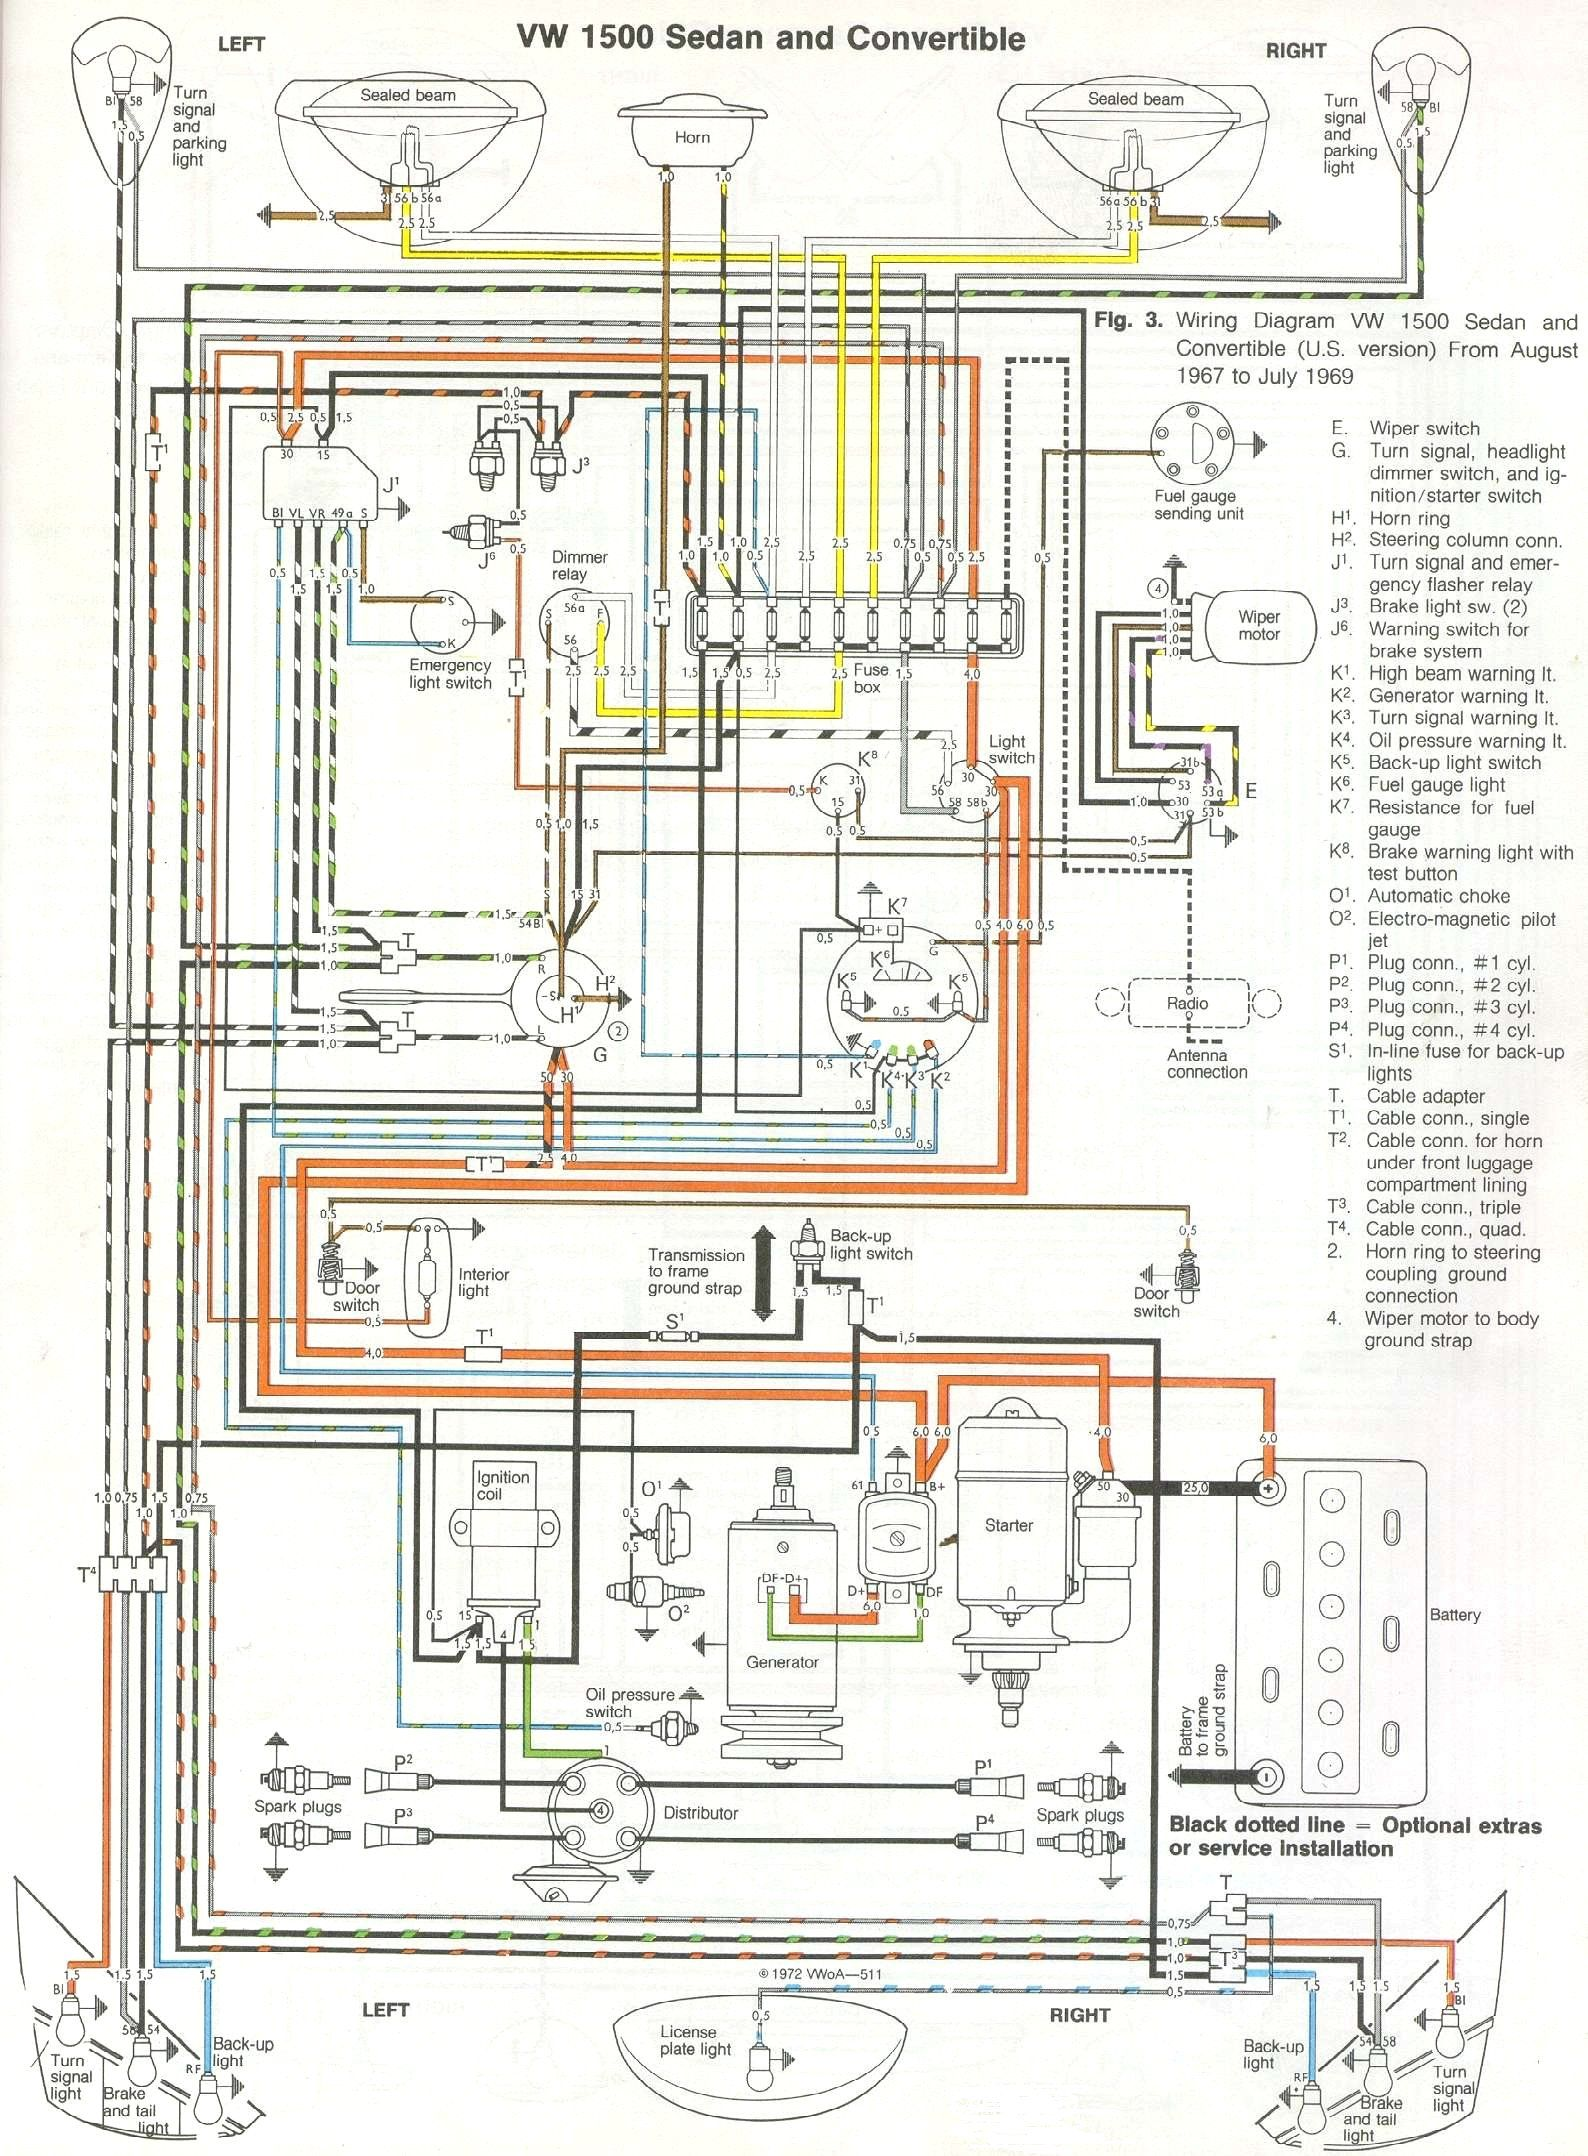 wiring diagram in addition 99 vw jetta engine diagram on 73 vw wiring harness in addition 2001 volkswagen jetta on 70 vw bug wiring [ 1588 x 2156 Pixel ]